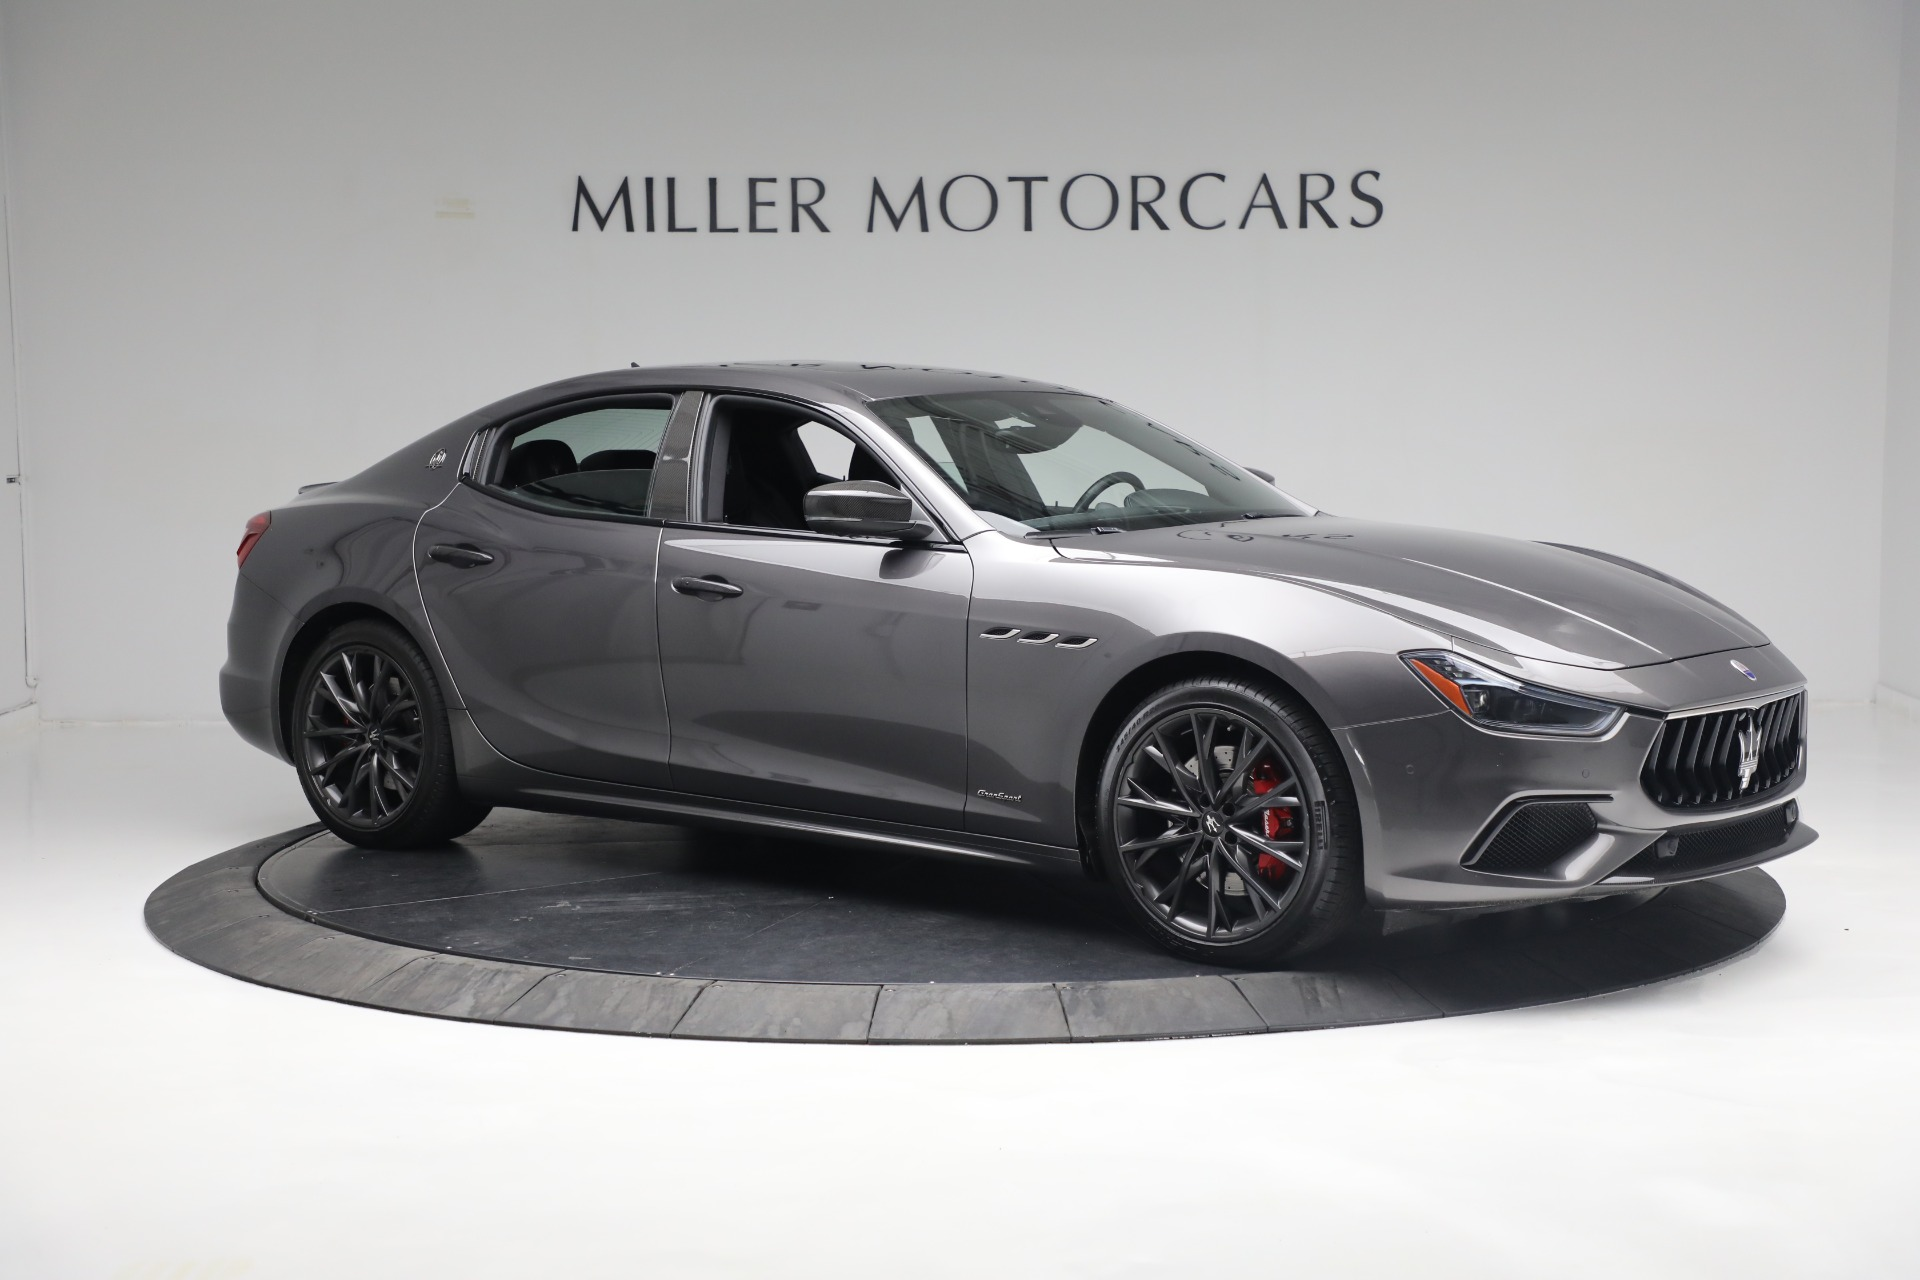 New 2019 Maserati Ghibli S Q4 GranSport For Sale In Westport, CT 2927_p10